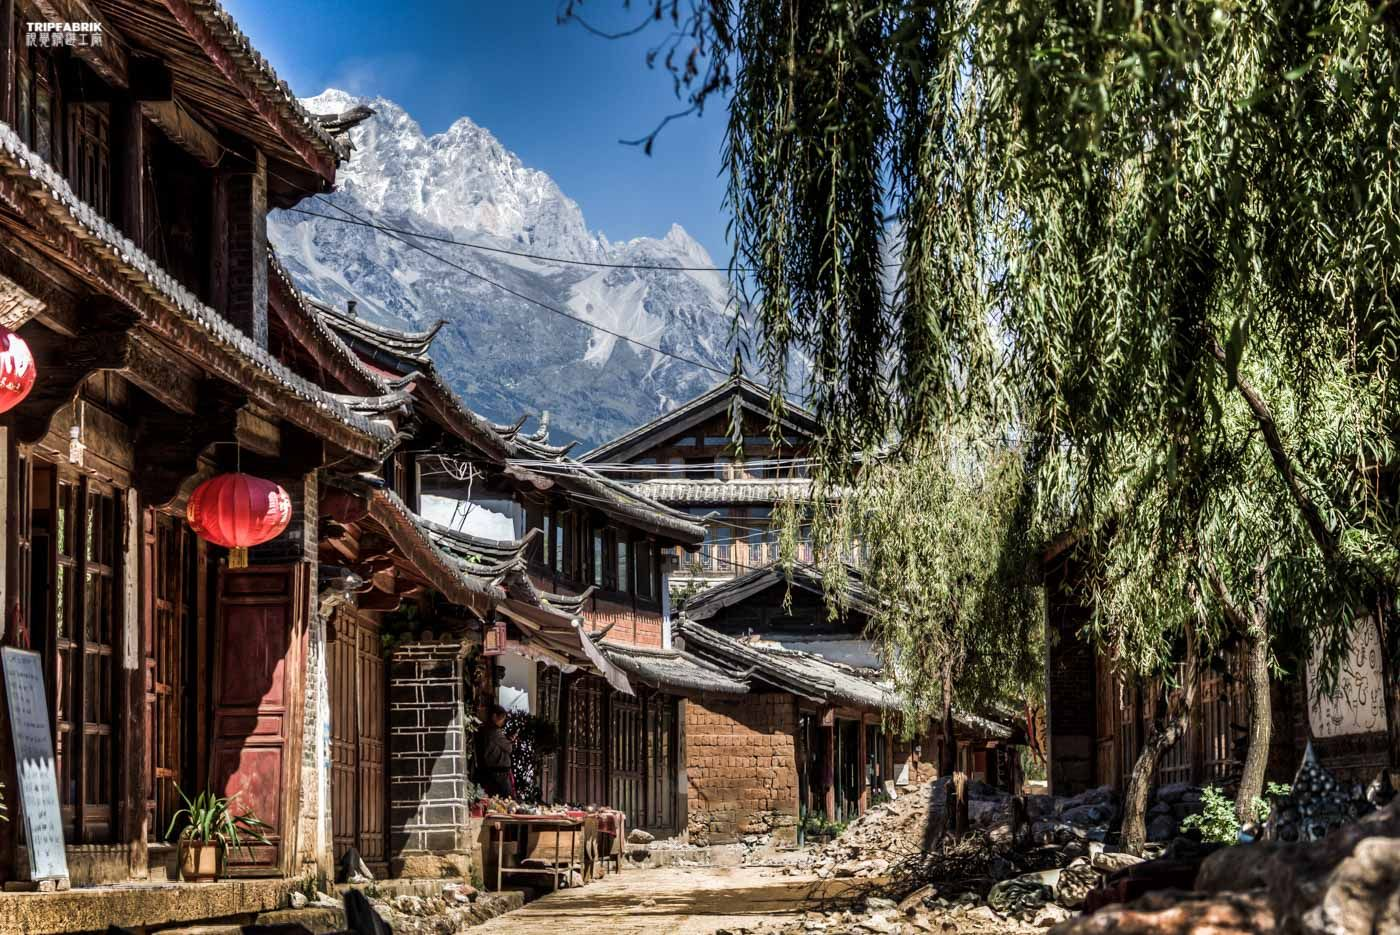 Lijiang Yunnan China | The ancient old town of Baixa, near Lijiang | China | Yunnan Province | ancient old town of Lijiang | dayan | shuhe | baixa | one of the most colorful and multifarious countries on this planet | find more photographs and films on http://tripfabrik.de  #china #asia #travel #photography #landscapes #nature #impressions #adventure #dayan #shuhe #baixa #lijiang #dali360 #ancient #oldtown #unesco #worldheritage #heritage